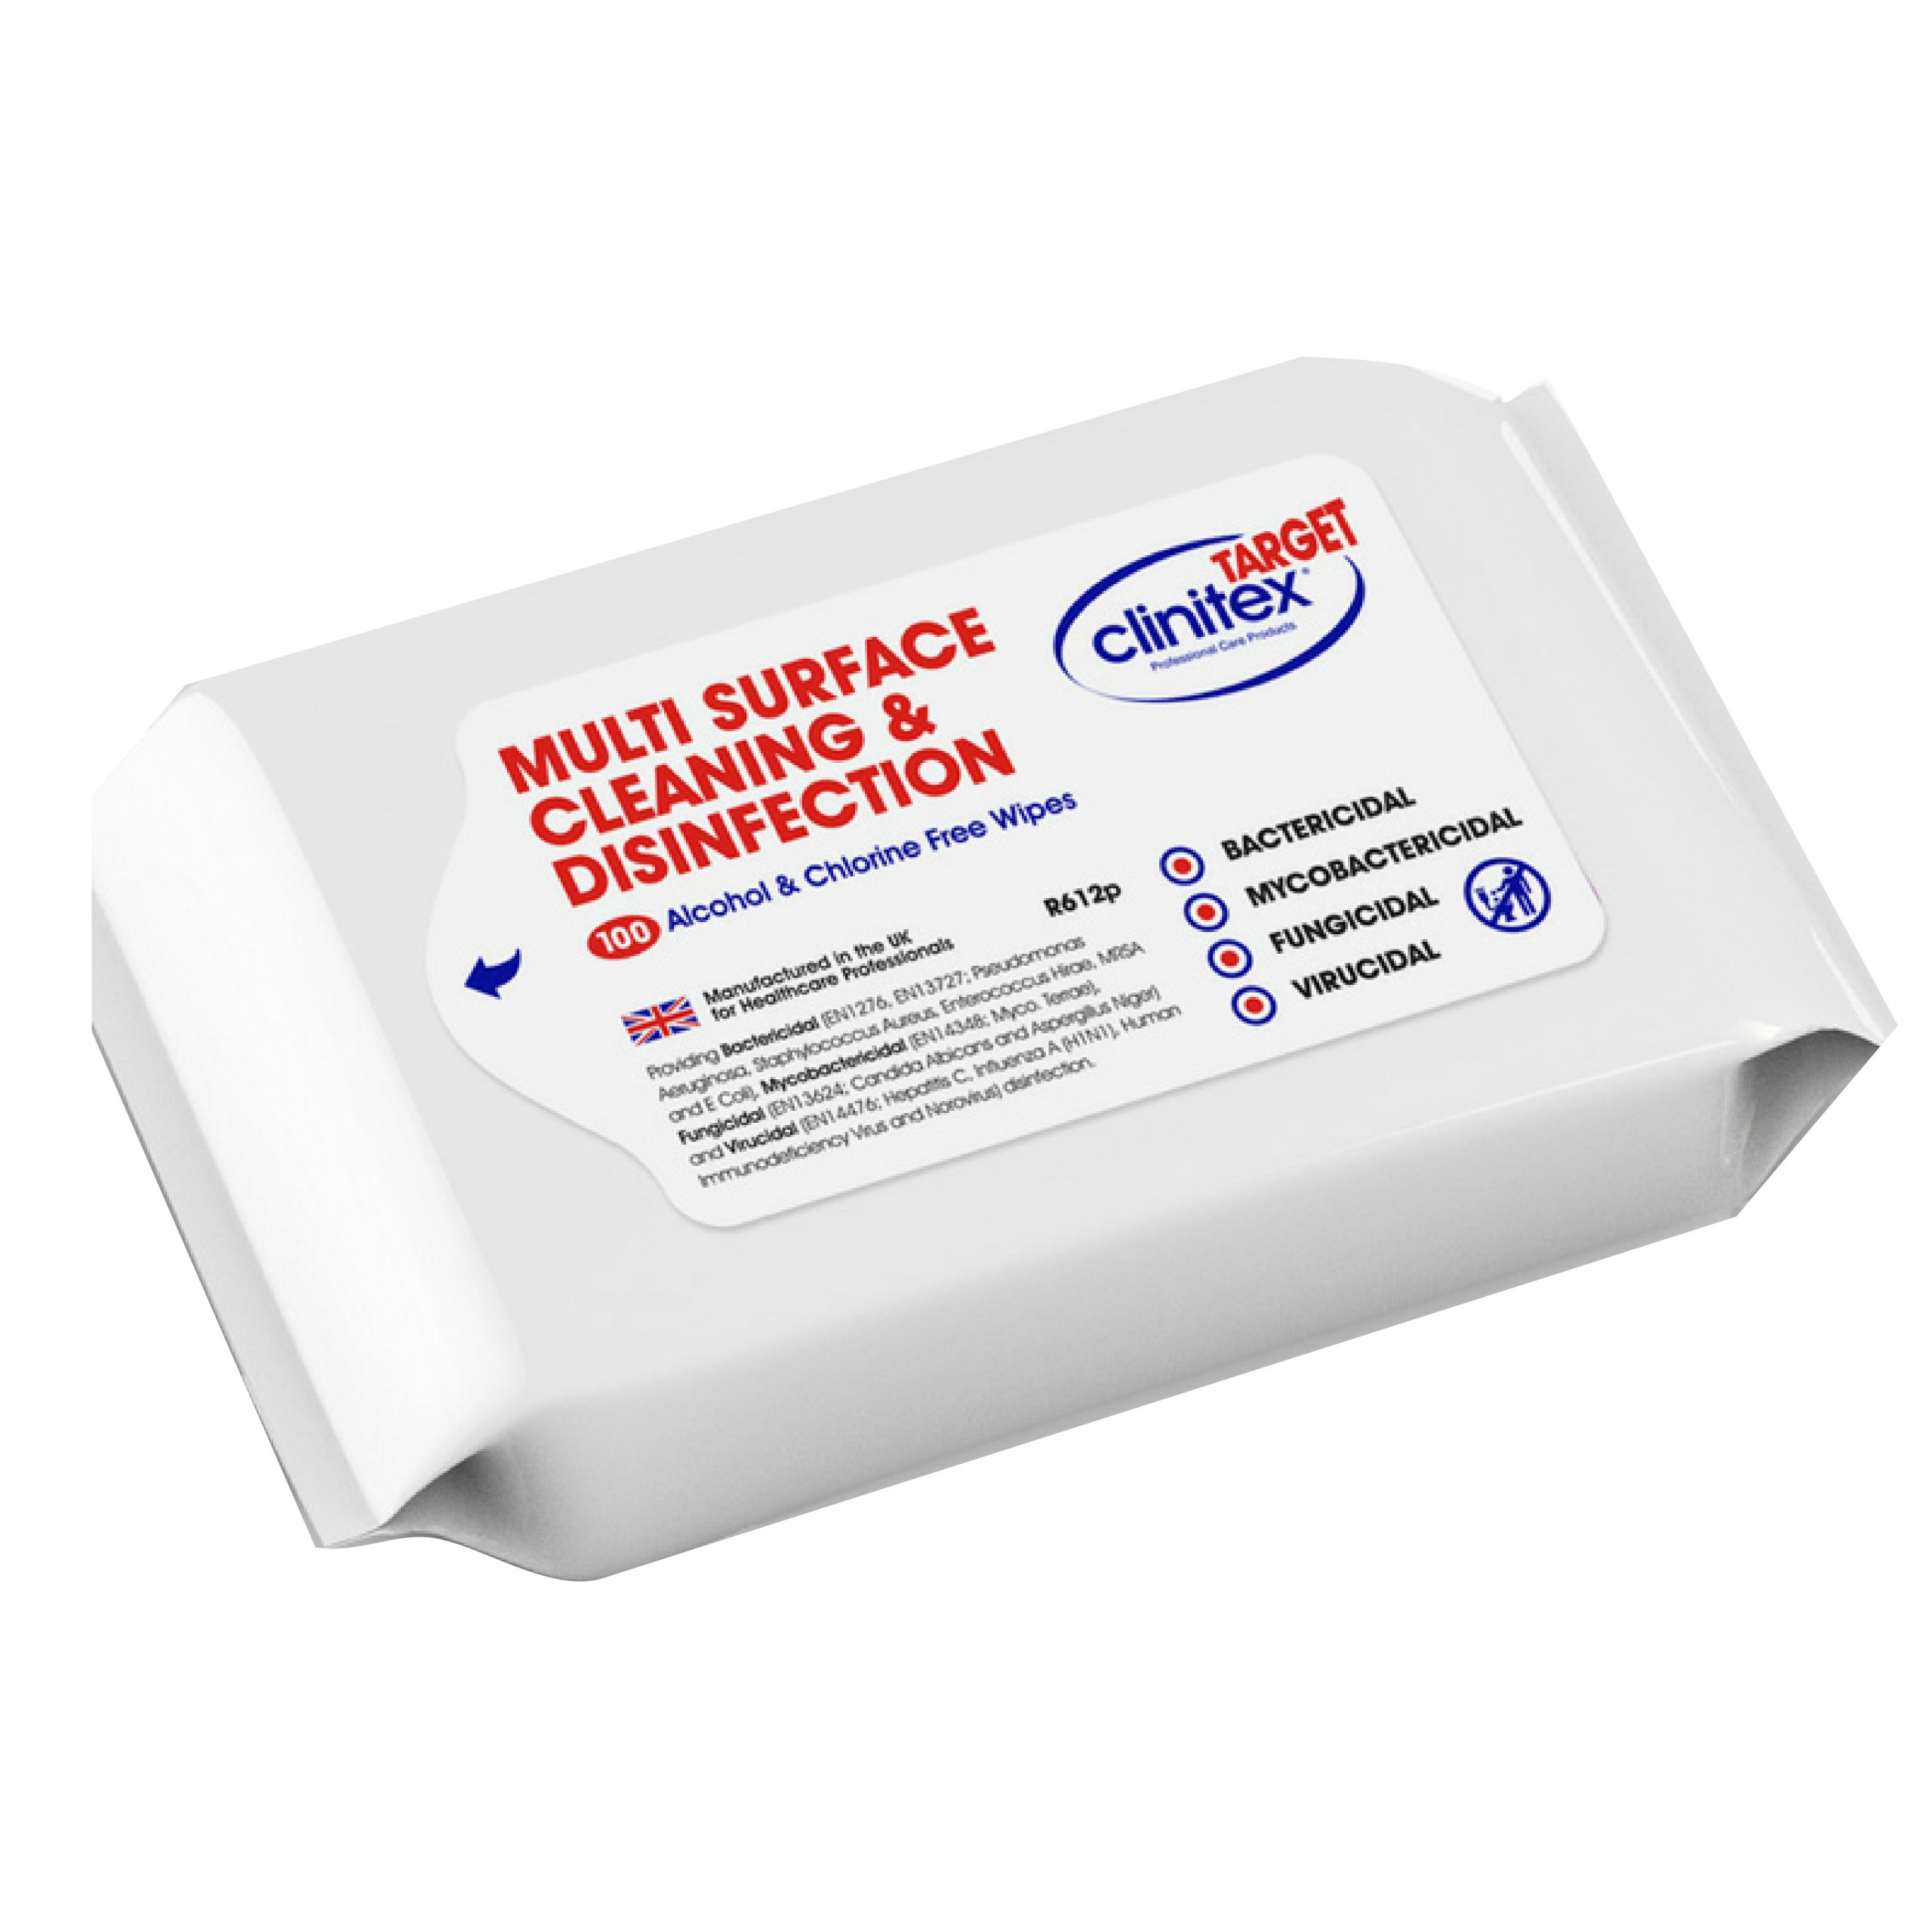 image of a packet of target multi surface disinfection wipes